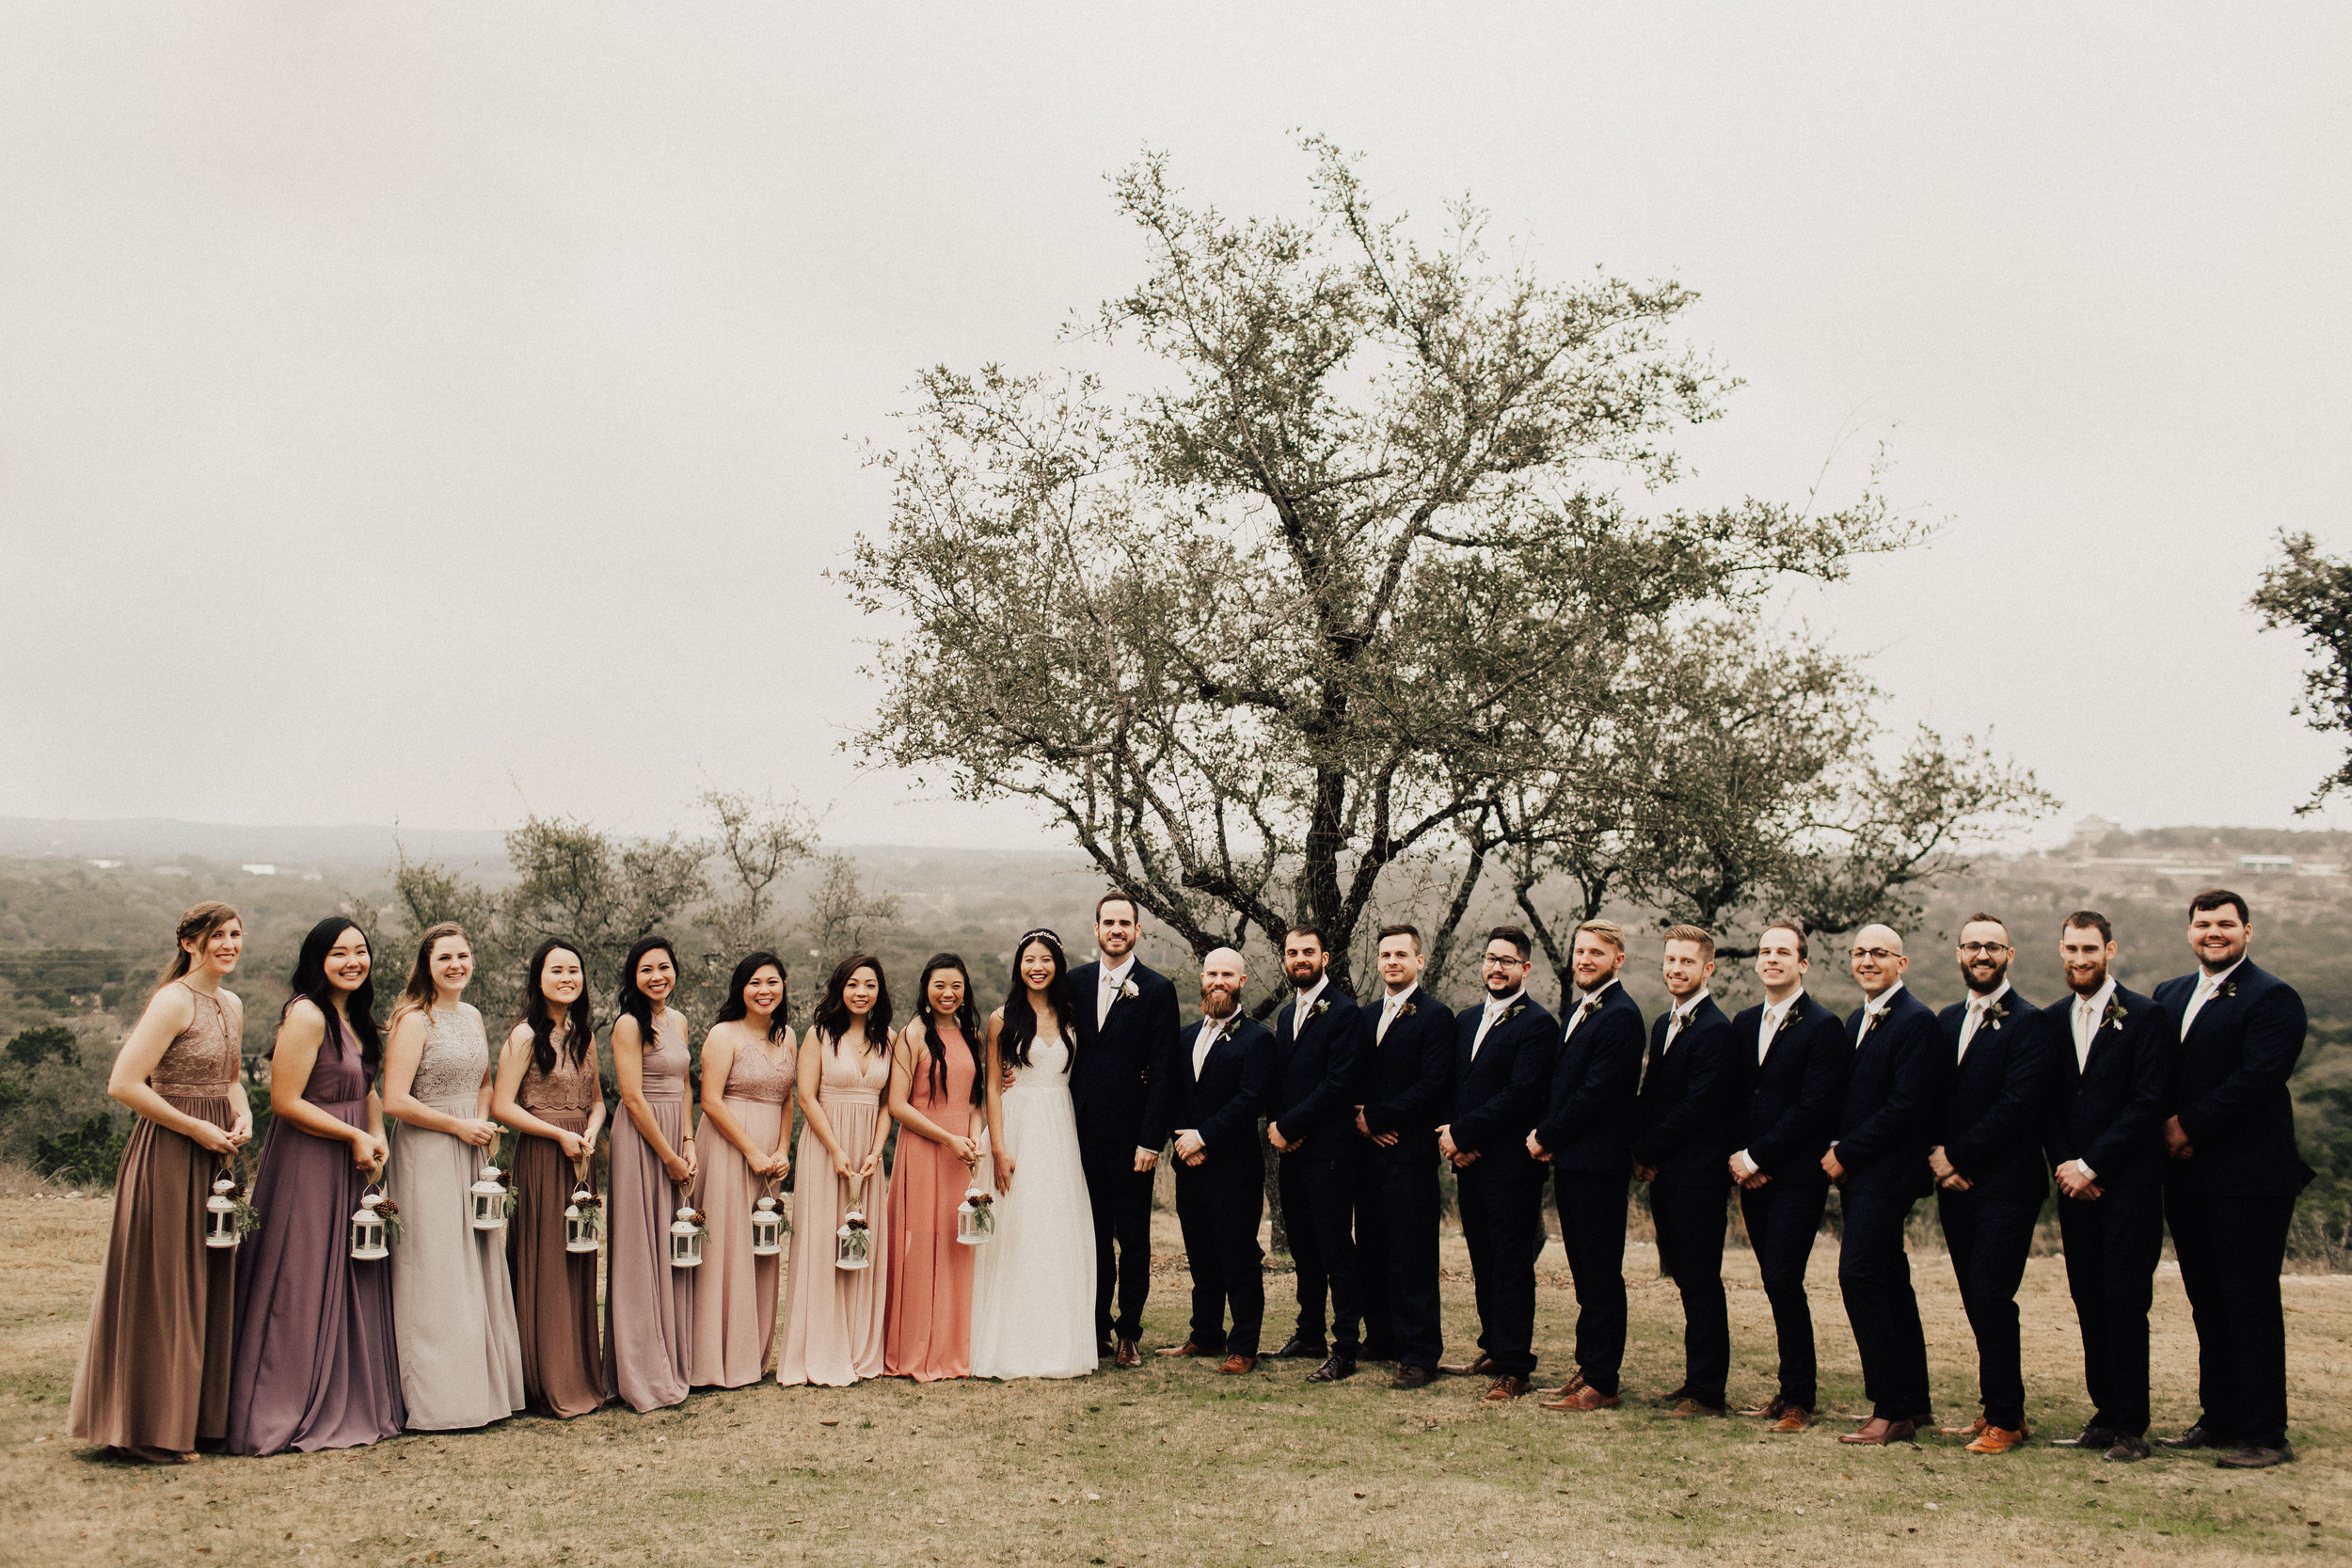 canyonwood-ridge-dripping-springs-texas-wedding-photography-318.jpg